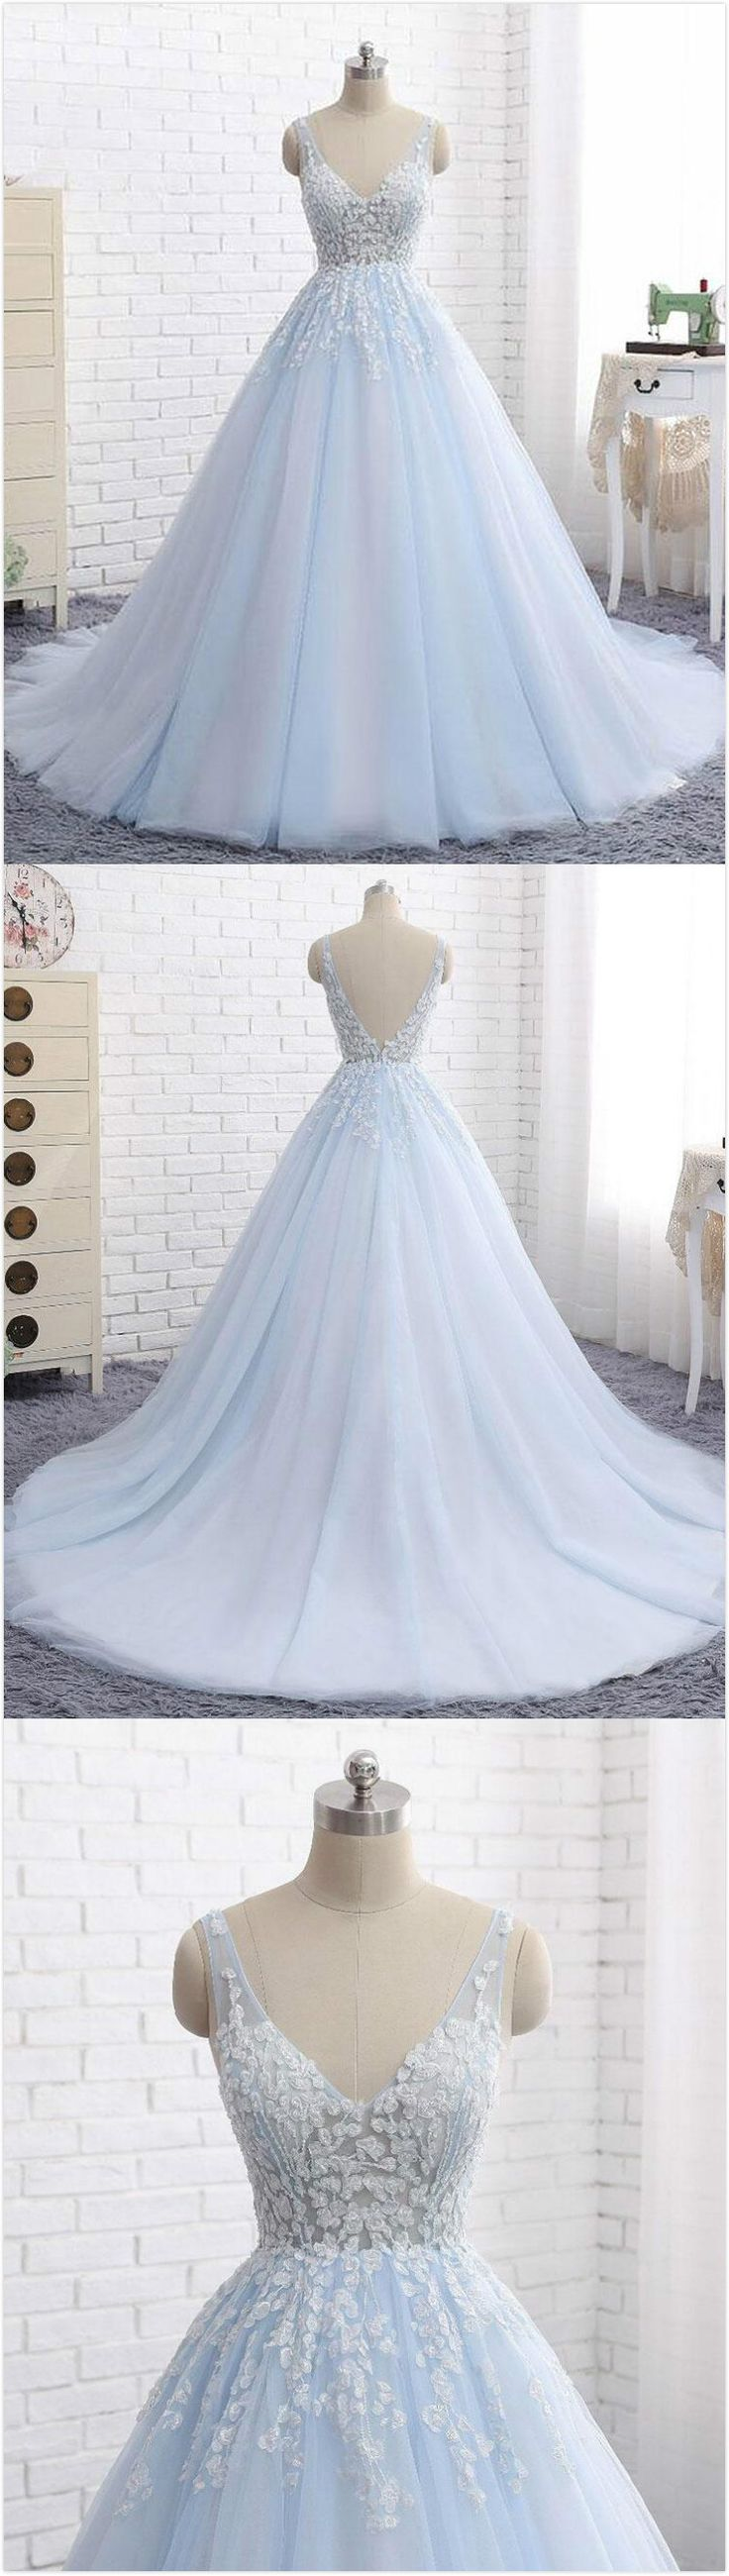 Elegant Ball Gown Prom Dress,V-Neck Prom Dress,Sexy Prom Dress,2018 Prom Dress,Formal Fress,Blue Tulle Long Prom/Evening Dress with Appliques